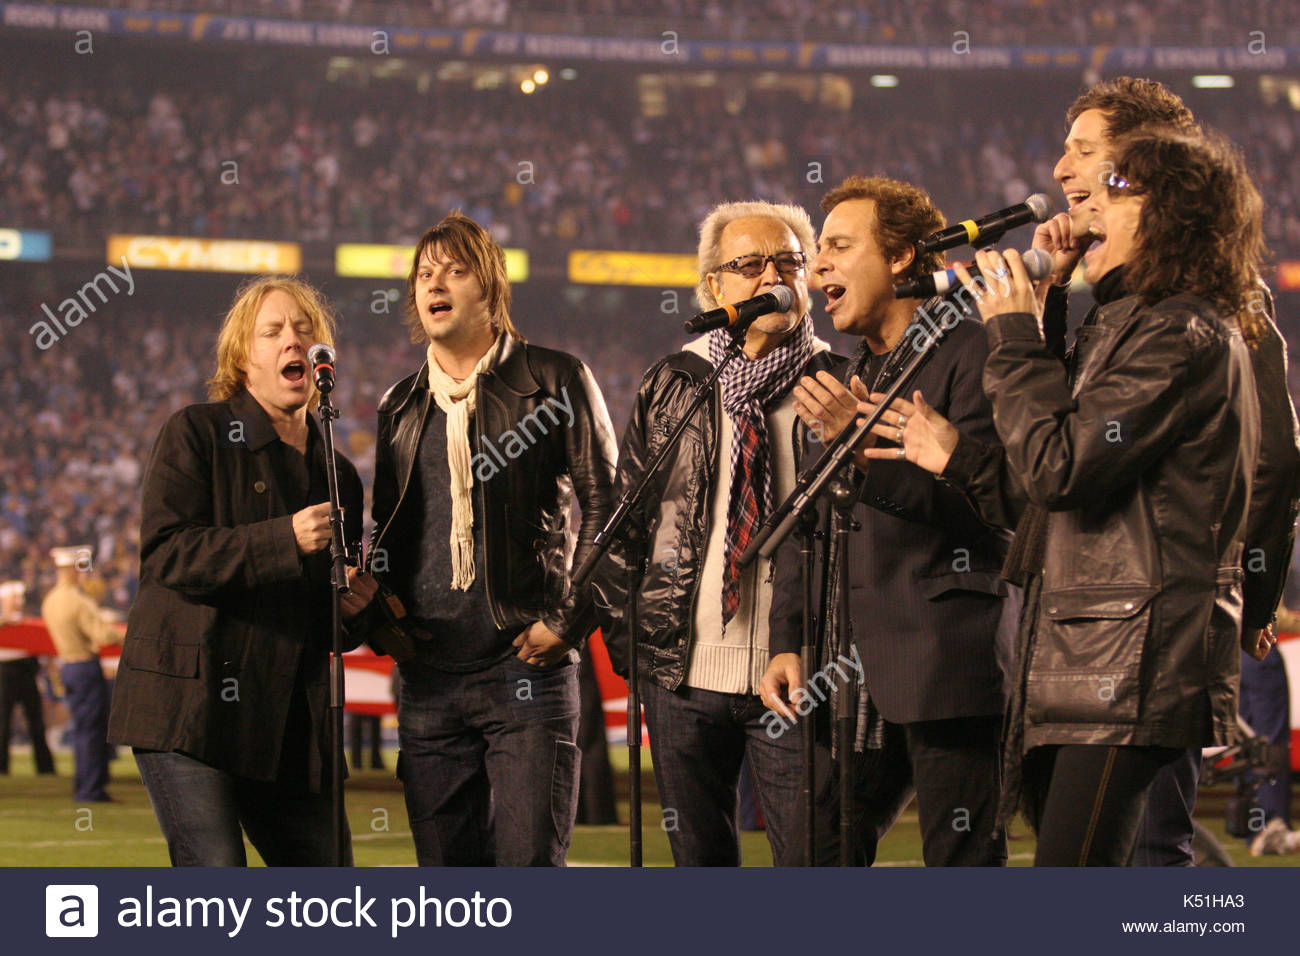 Foreigner Band Stock Photos Amp Foreigner Band Stock Images